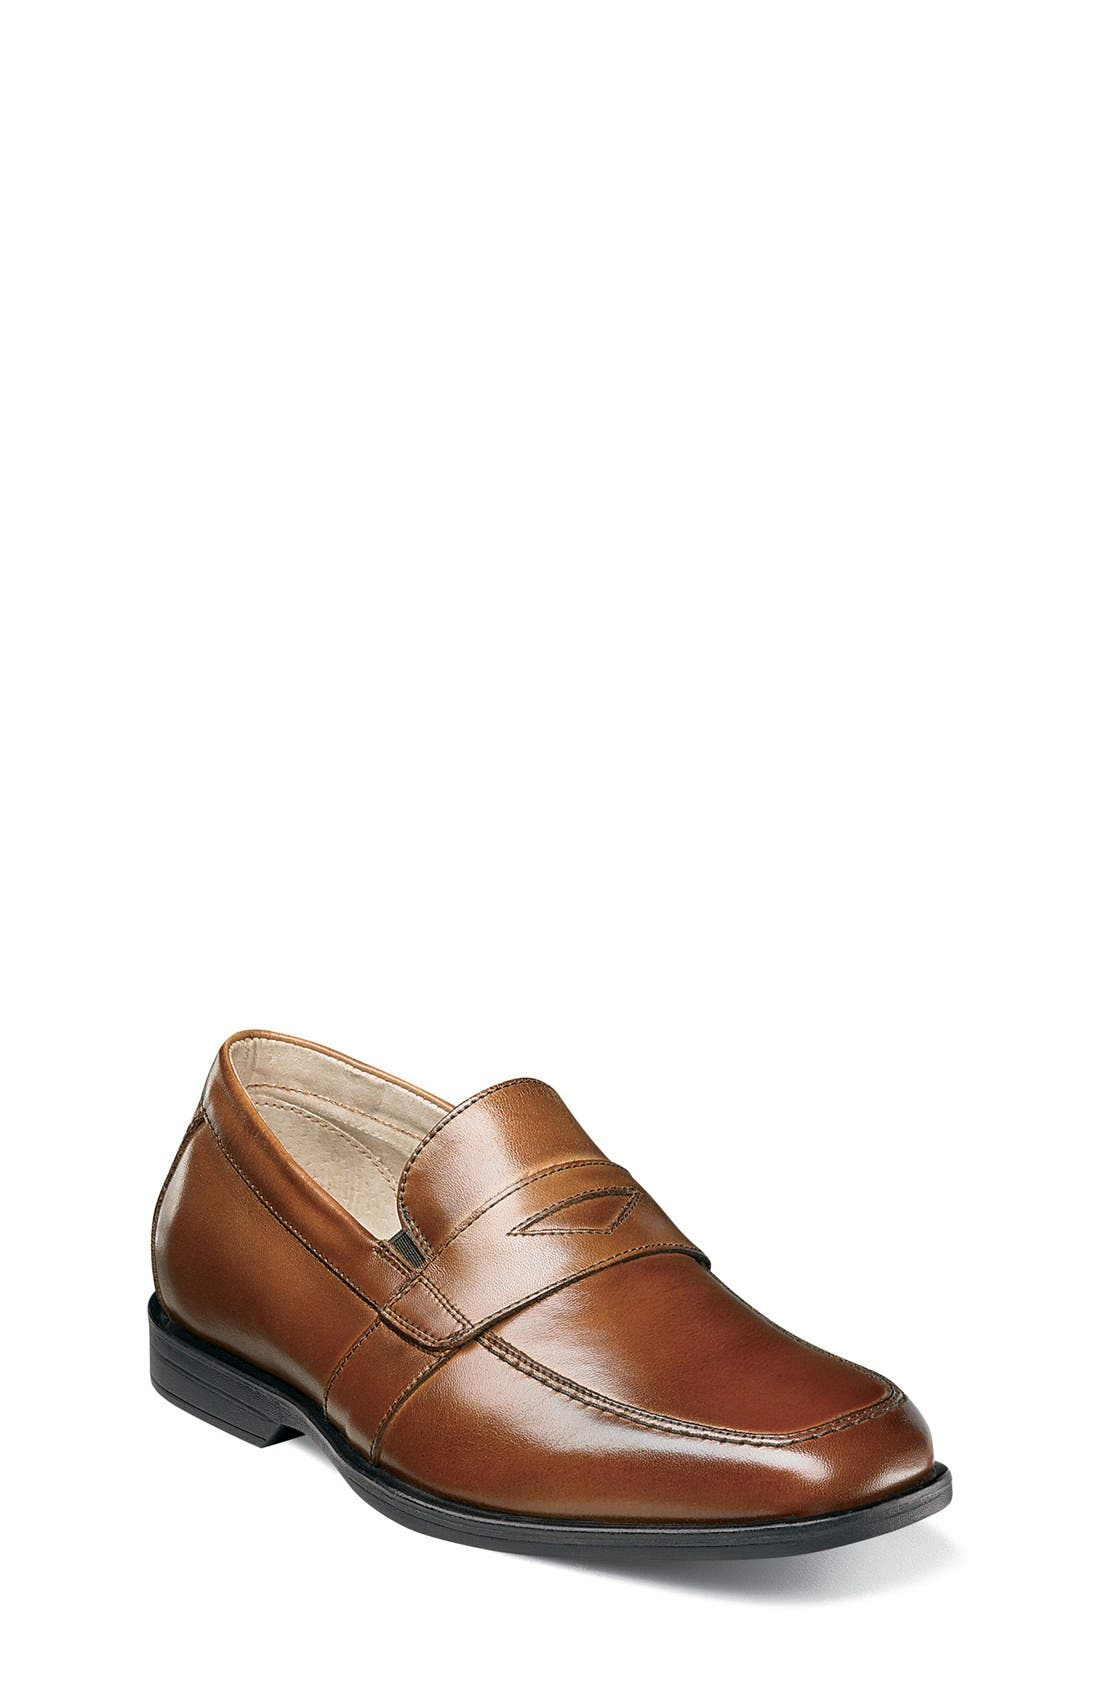 'Reveal' Penny Loafer, Main, color, COGNAC LEATHER